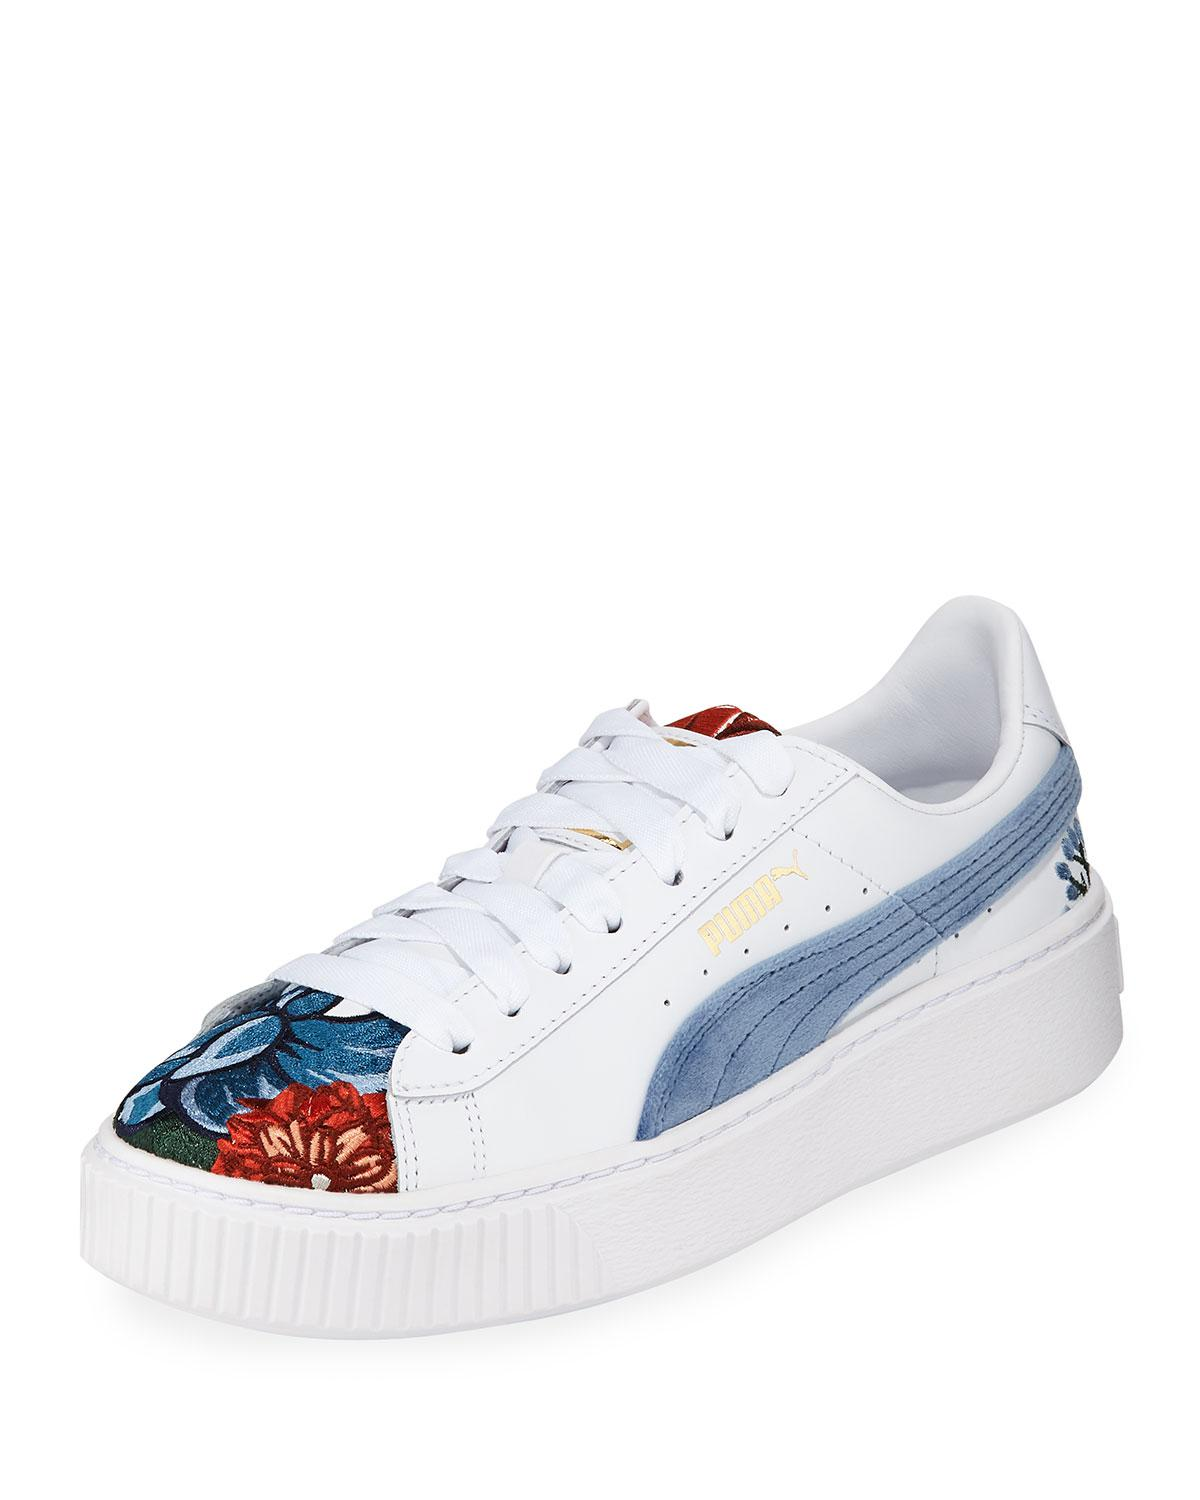 478ea11e9d1 Puma Hyper Embroidered Platform Sneakers in White - Lyst